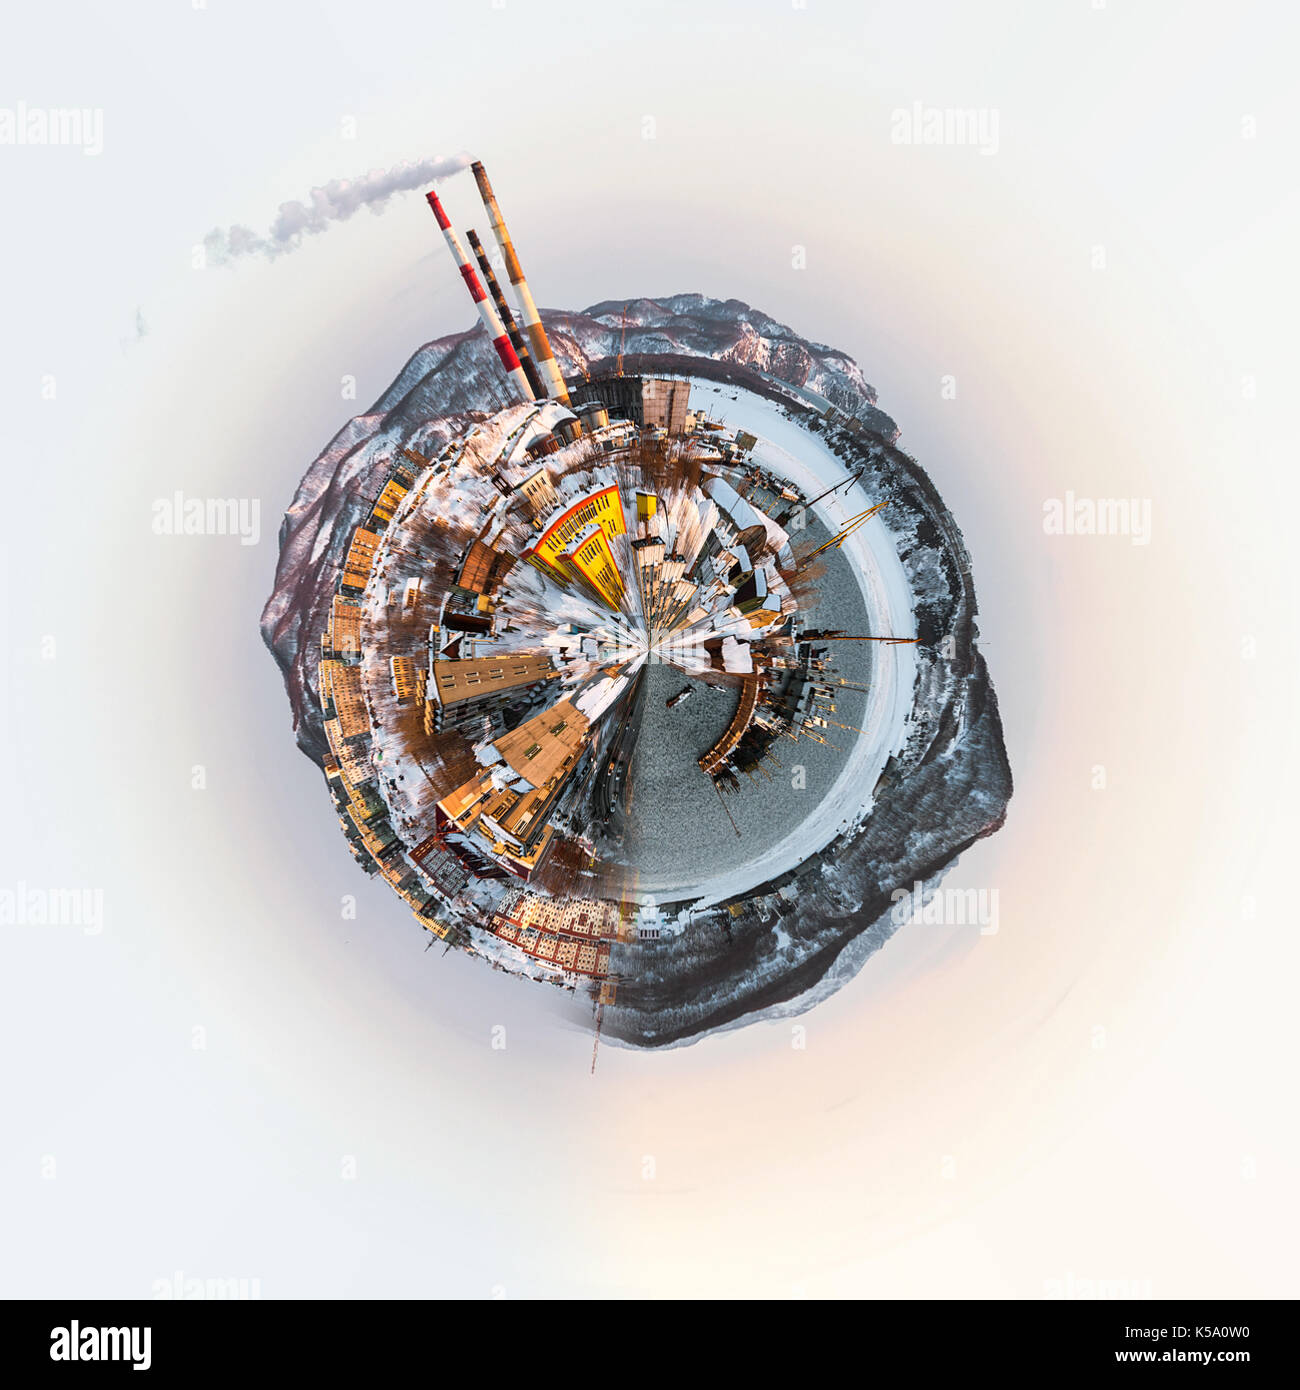 Little planet 360 degree sphere. Panoramic view of Petropavlovsk-Kamchatsky city, seaport and power plant. Far East, Russia - Stock Image